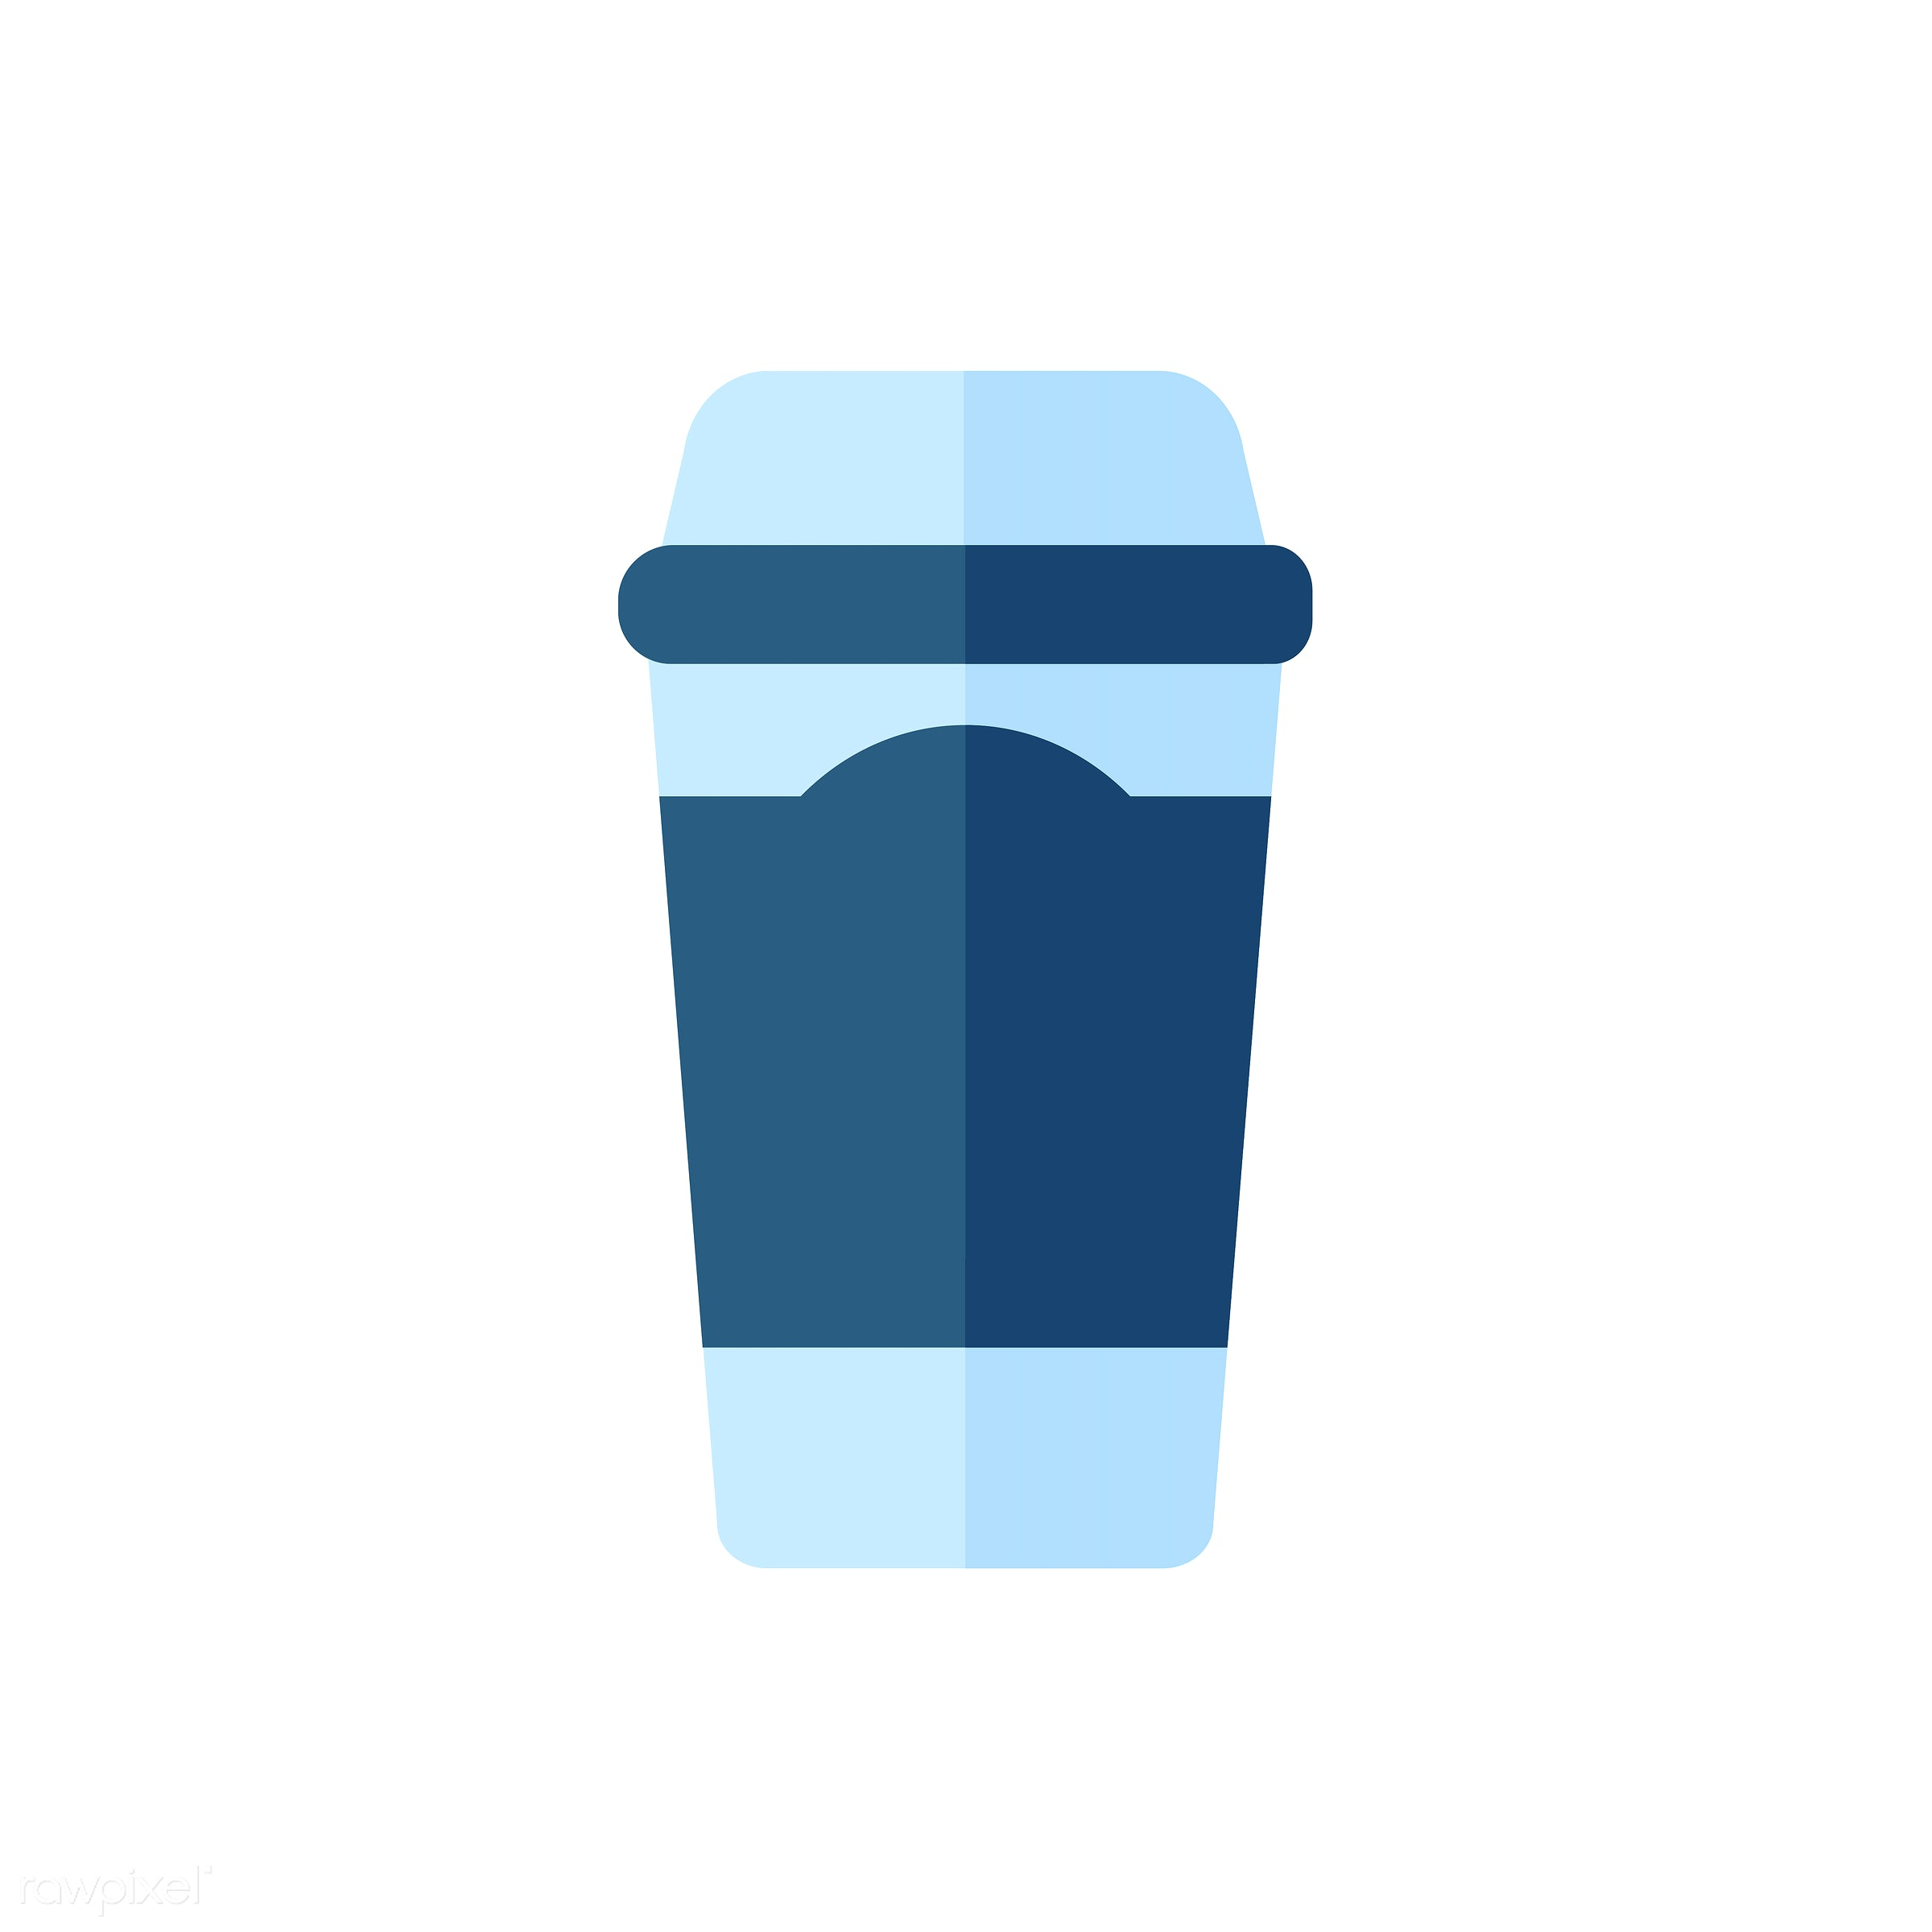 vector, graphic, illustration, icon, symbol, colorful, cute, drink, beverage, water, blue, takeaway cup, takeaway mug,...